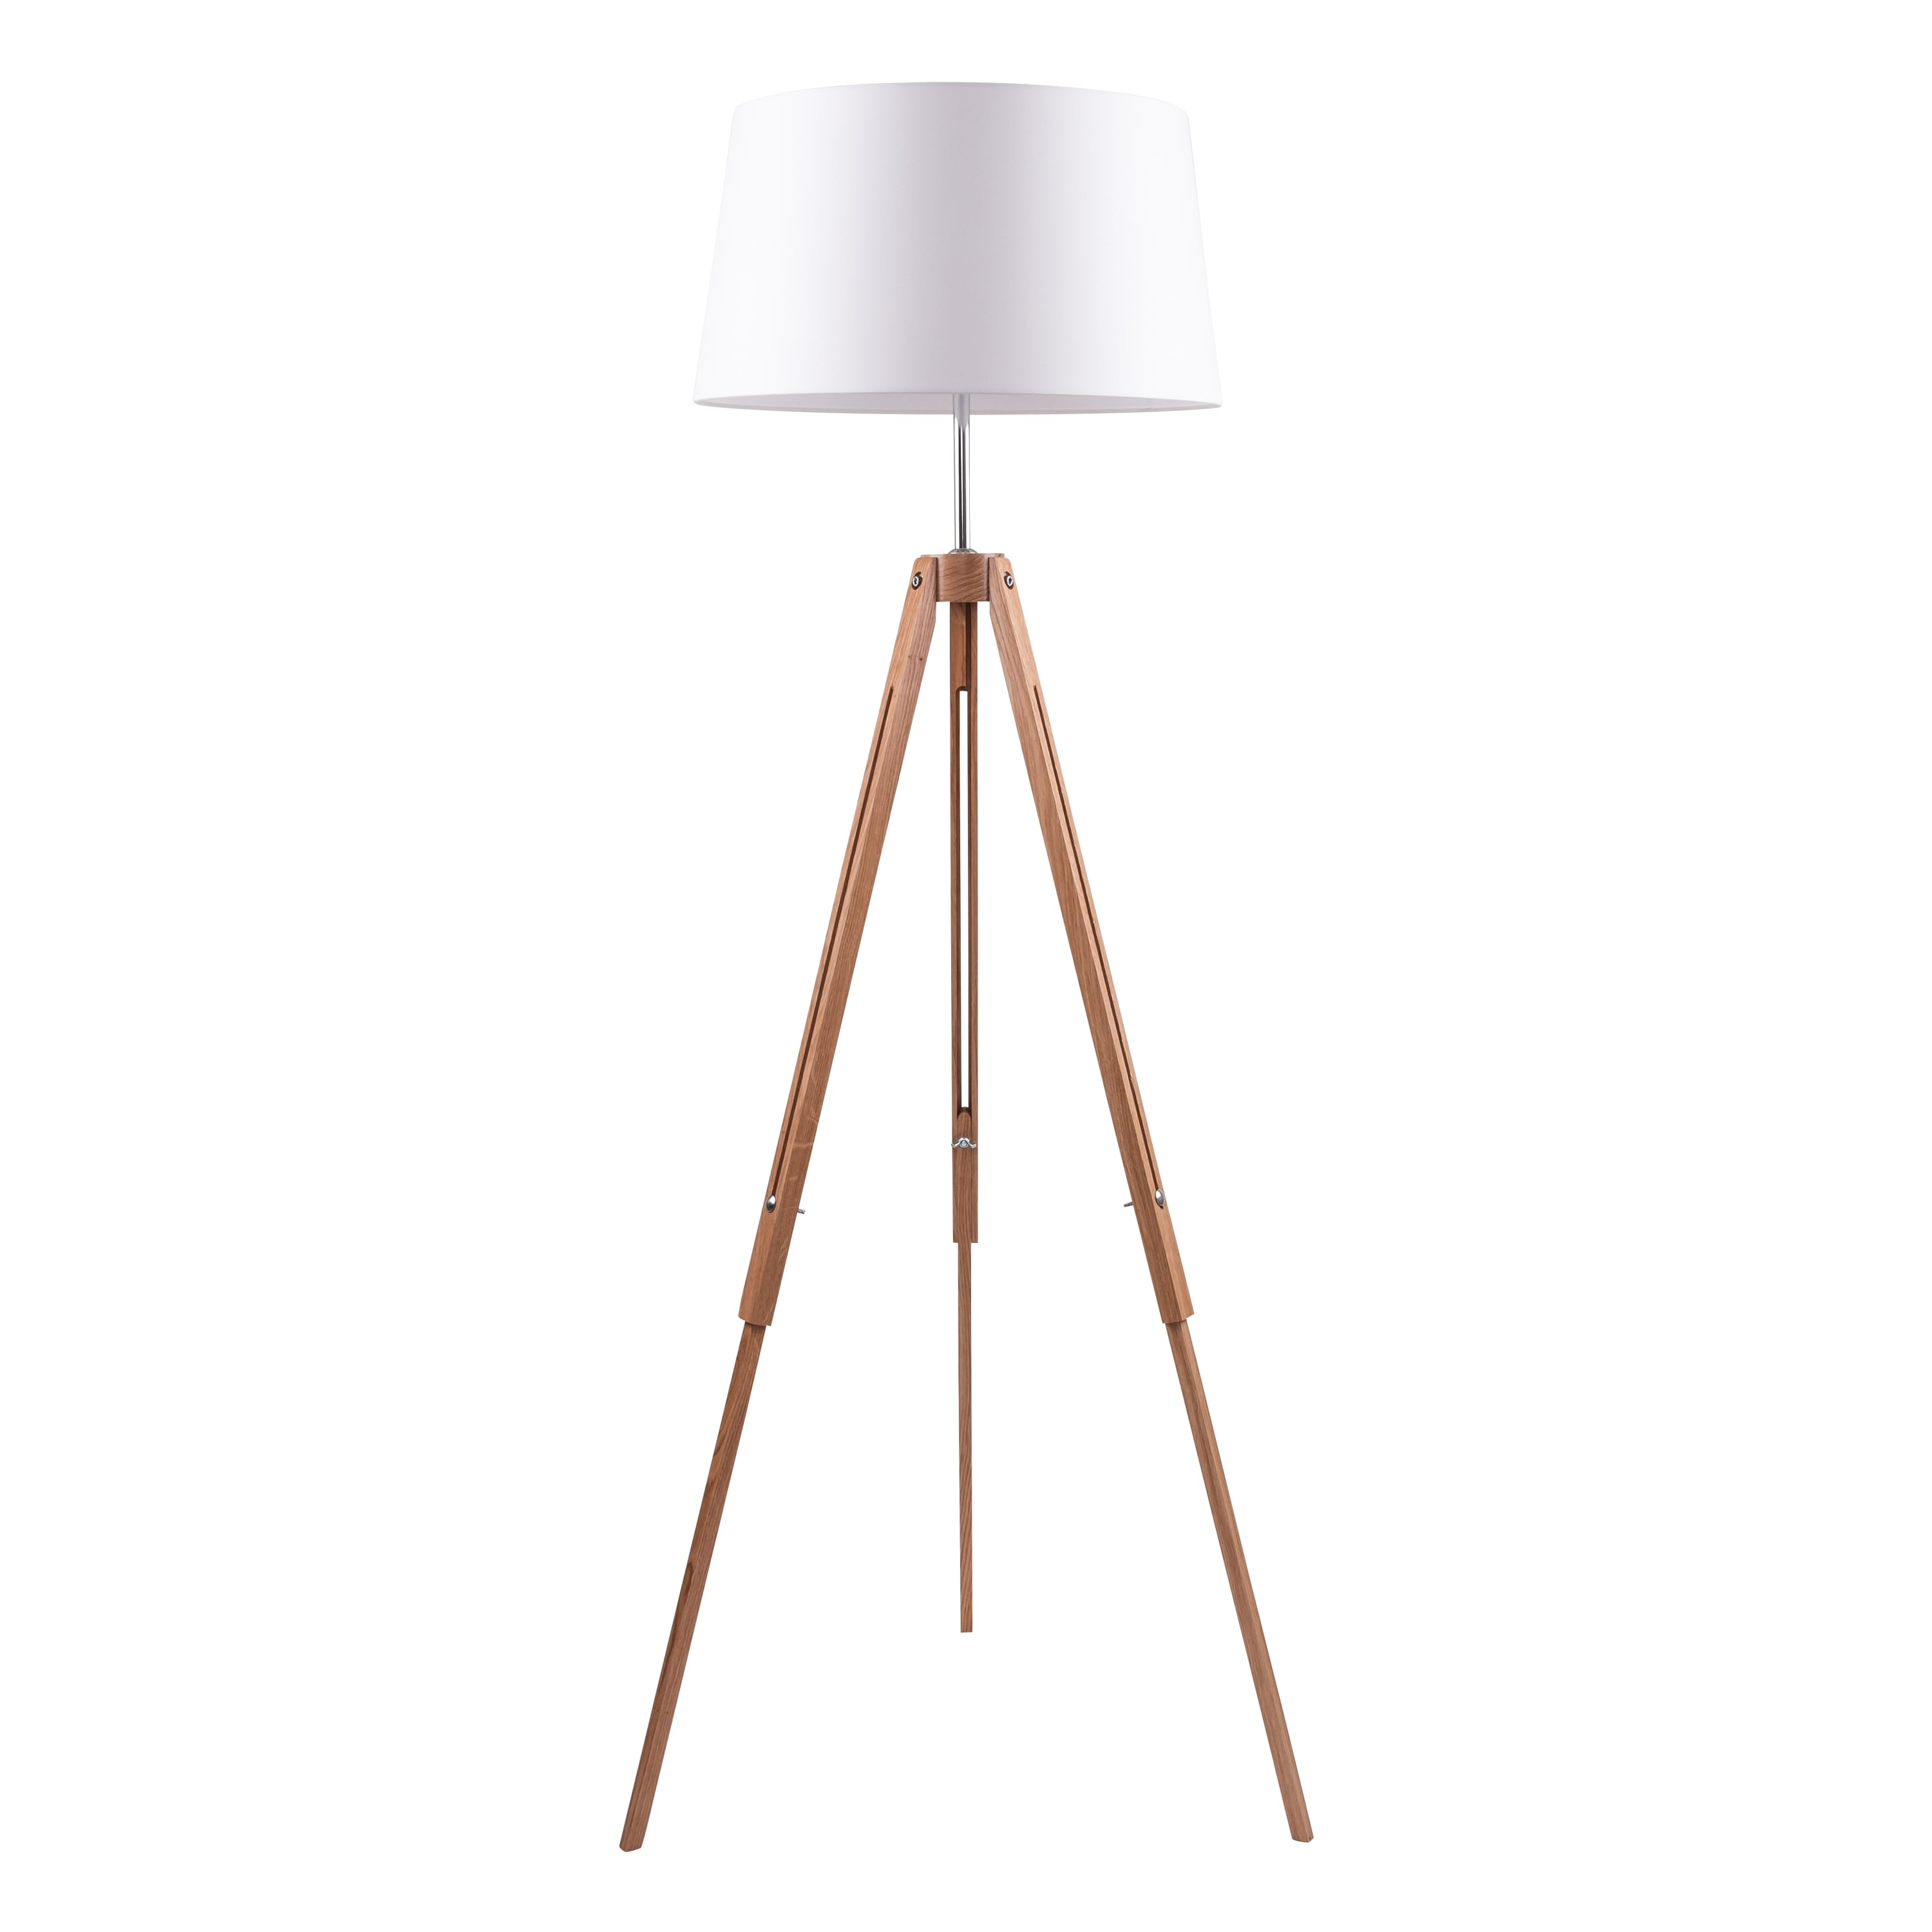 Floor lamp Tripod oak / chrome / white E27 60W